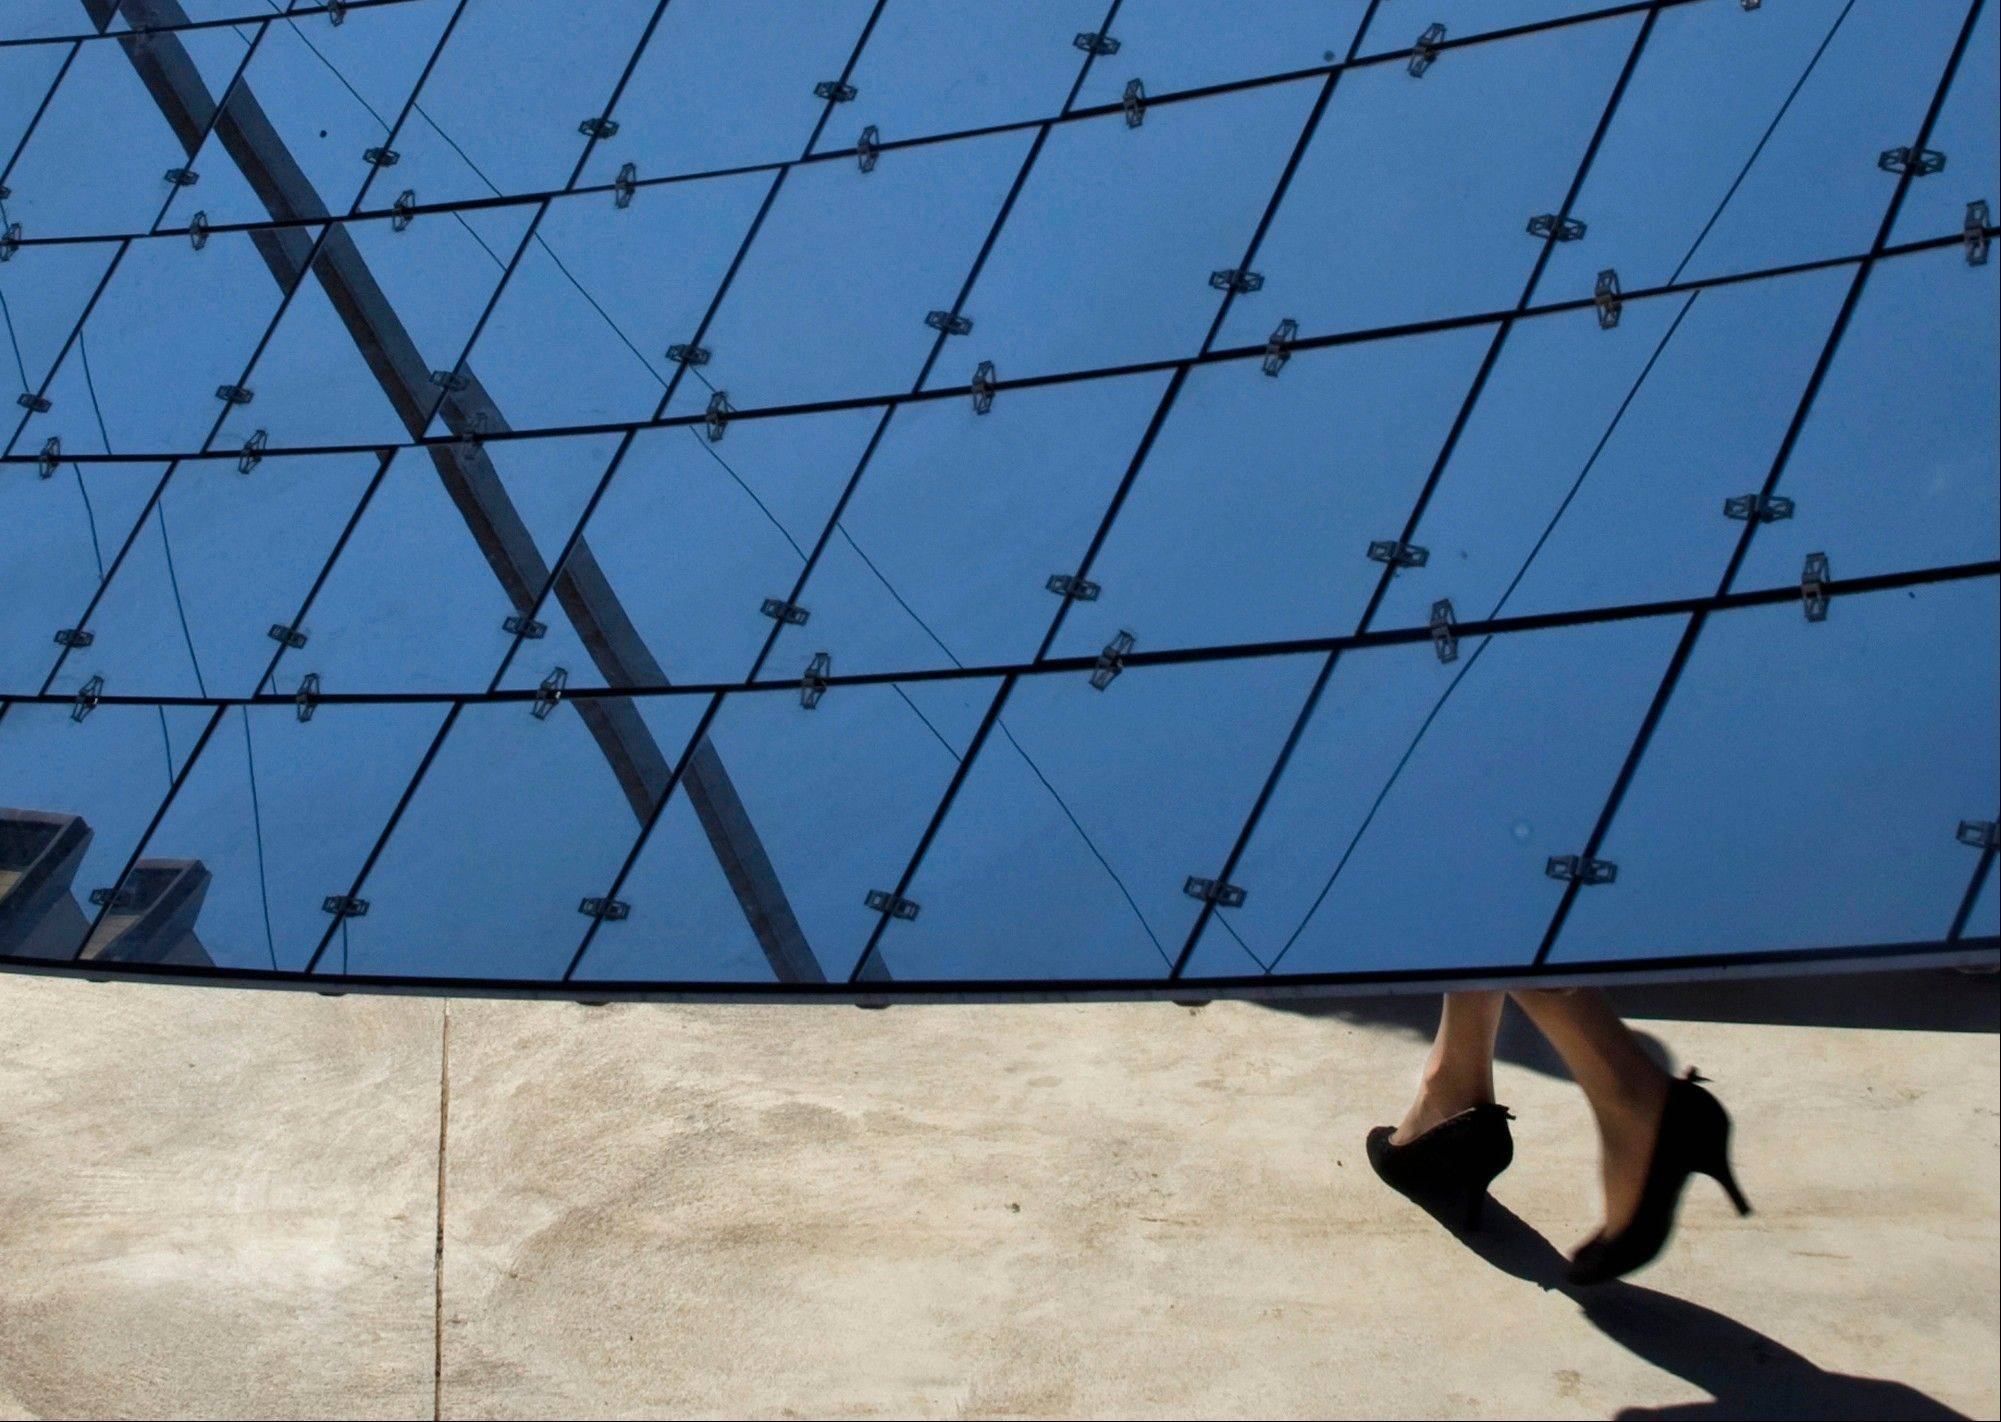 A visitor walks by a solar dish at a solar farm, which according to the manufacturer, are revolutionary in the way they efficiently produce maximum energy using a minimal area, in Kibbutz Kvutzat Yavne, Israel.